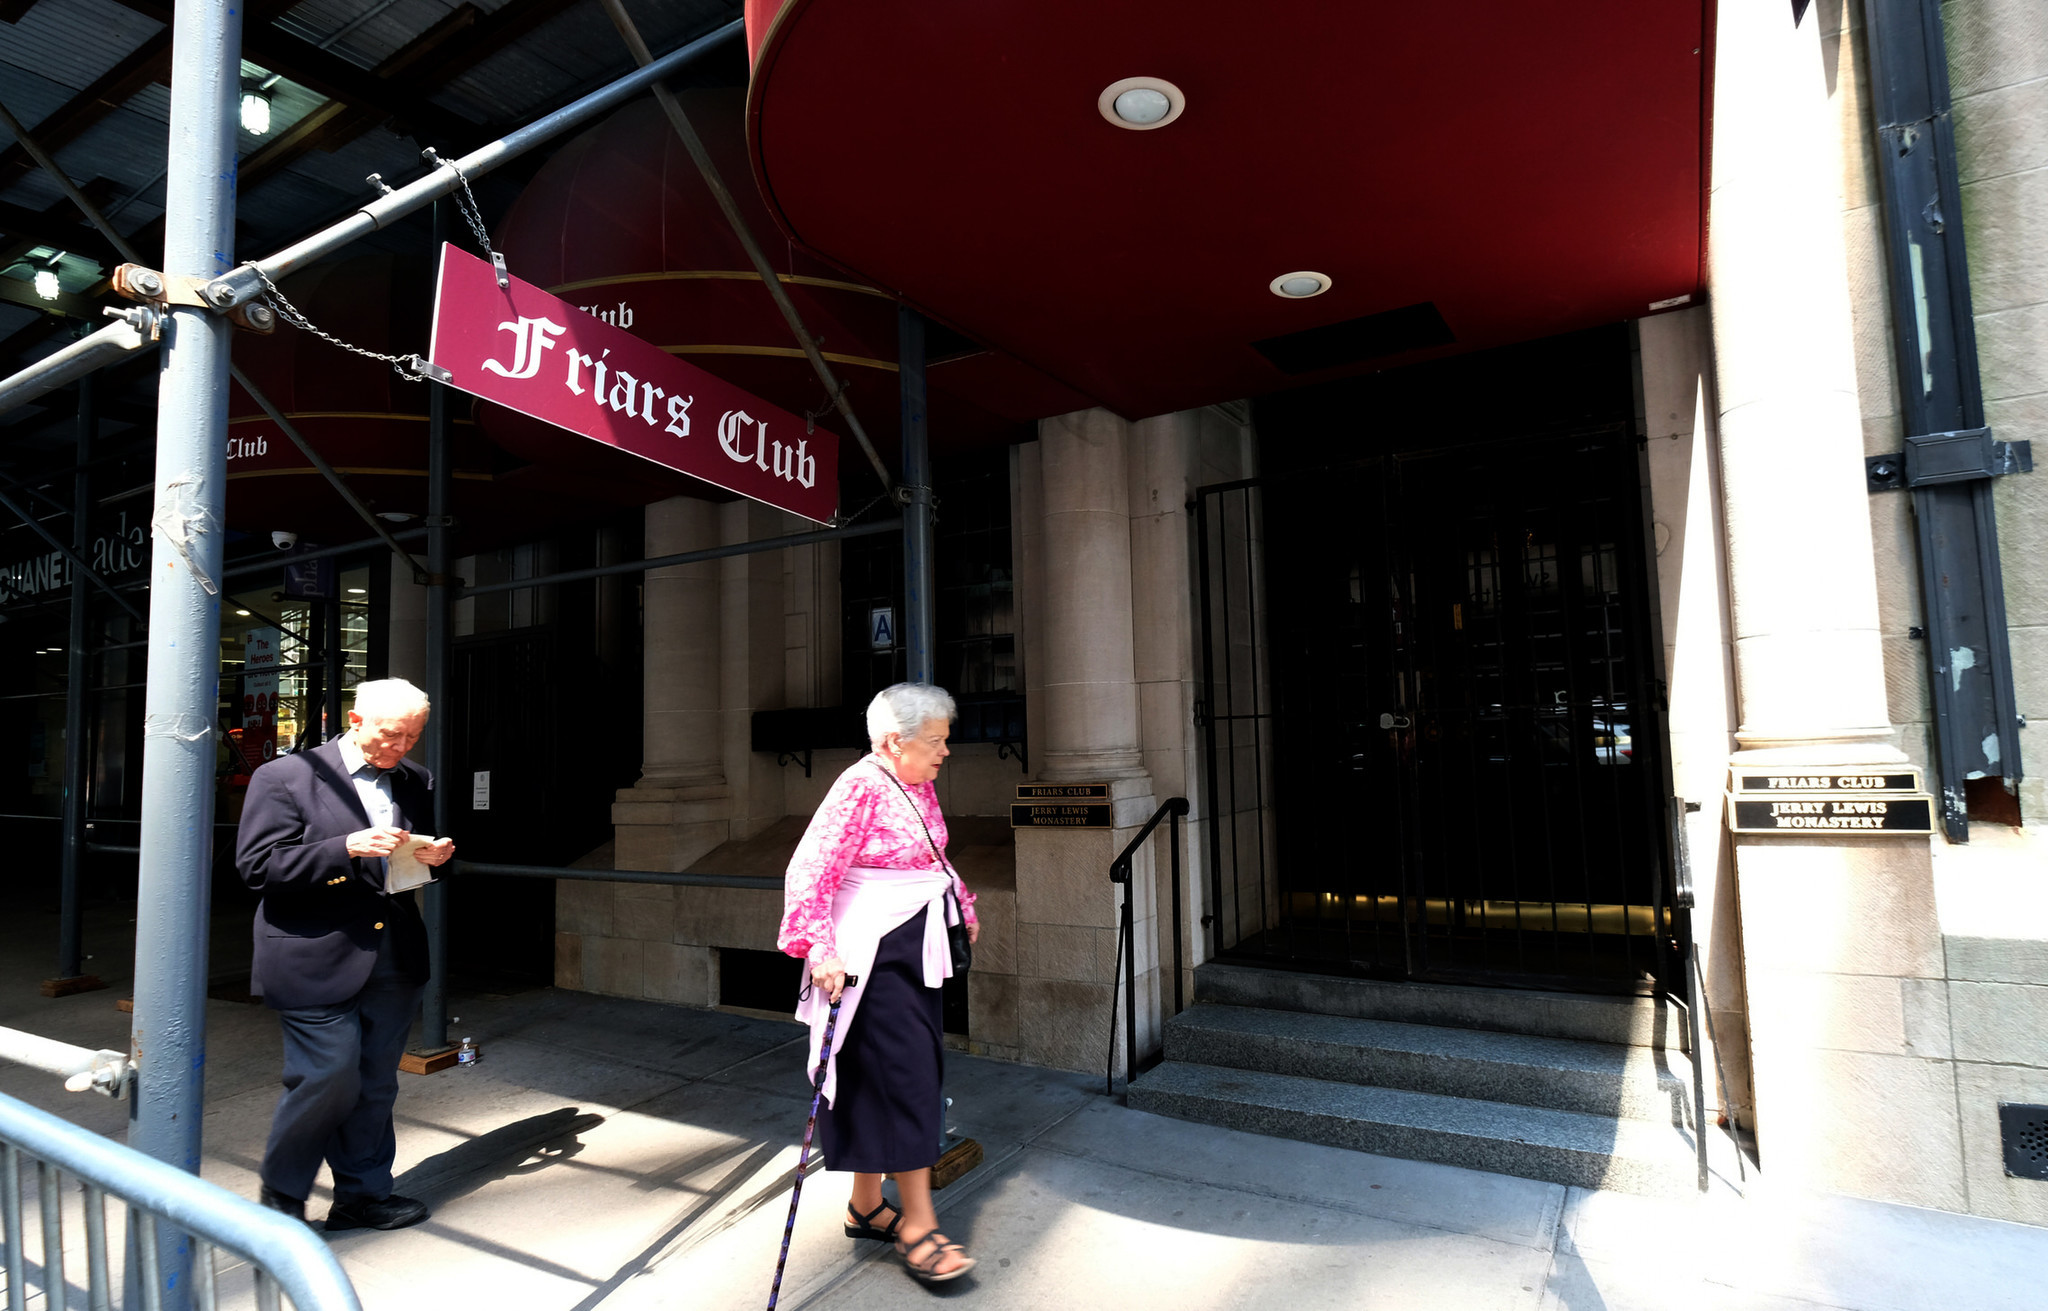 Financially struggling Friars Club under water again when pipe bursts